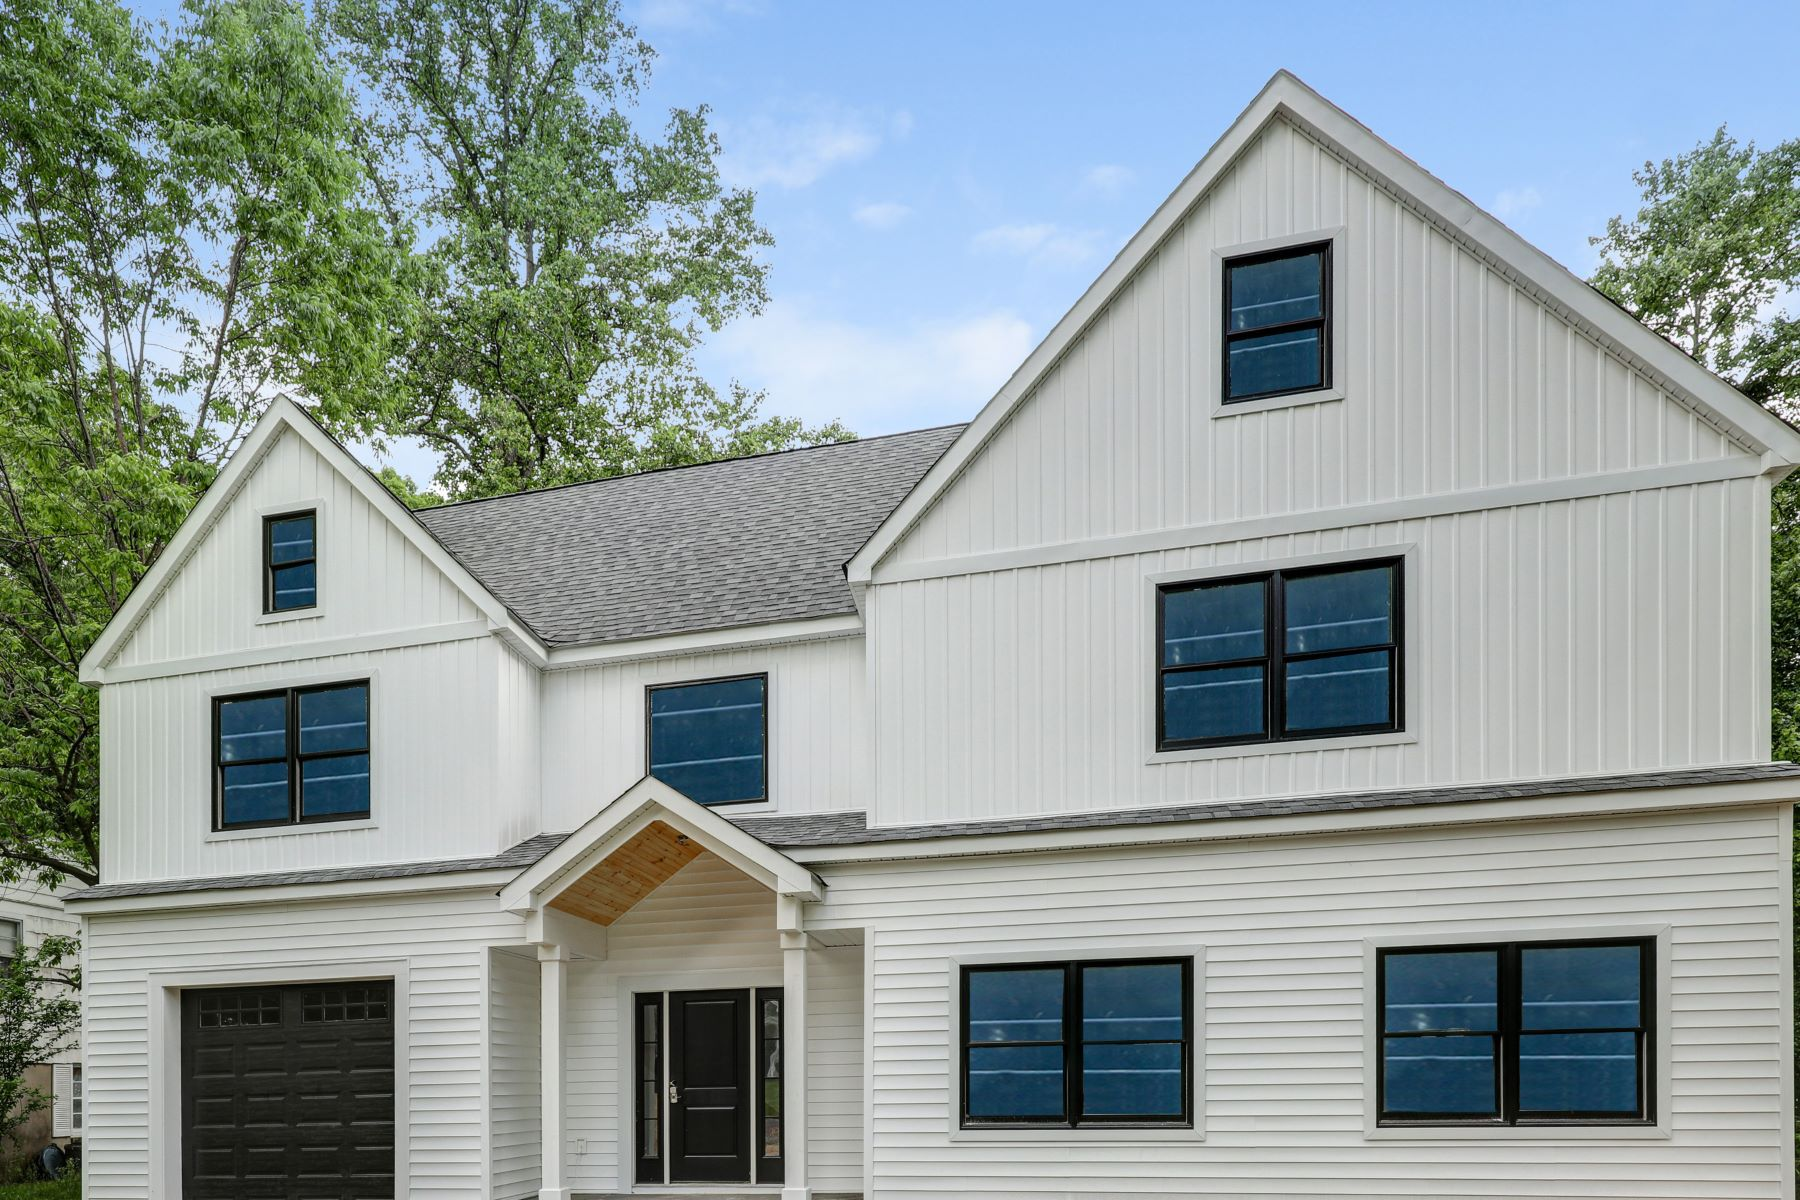 Single Family Homes for Sale at Modern Farmhouse Chic 19 Townsend Drive Florham Park, New Jersey 07932 United States